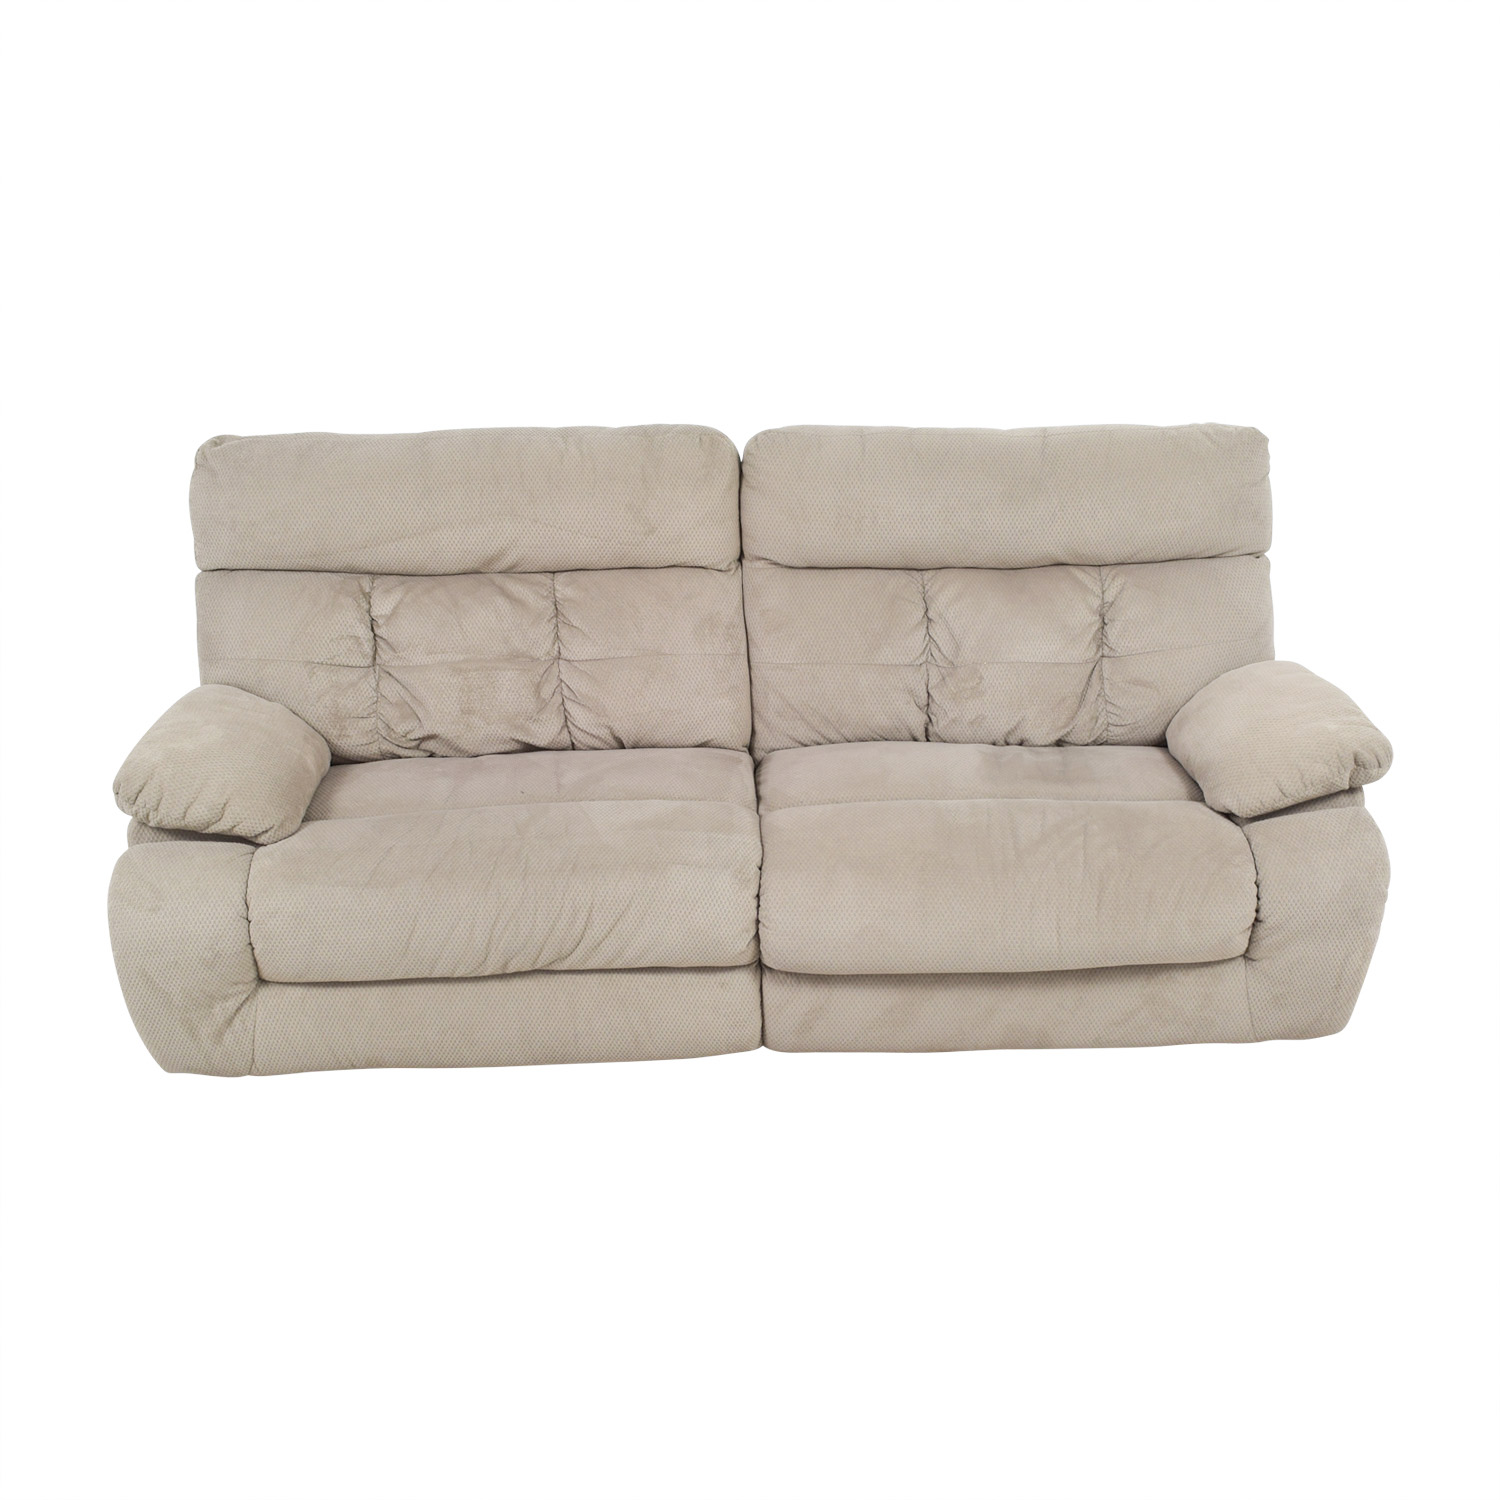 Recling Sofa Signature Design By Ashley Austere 2 Seat